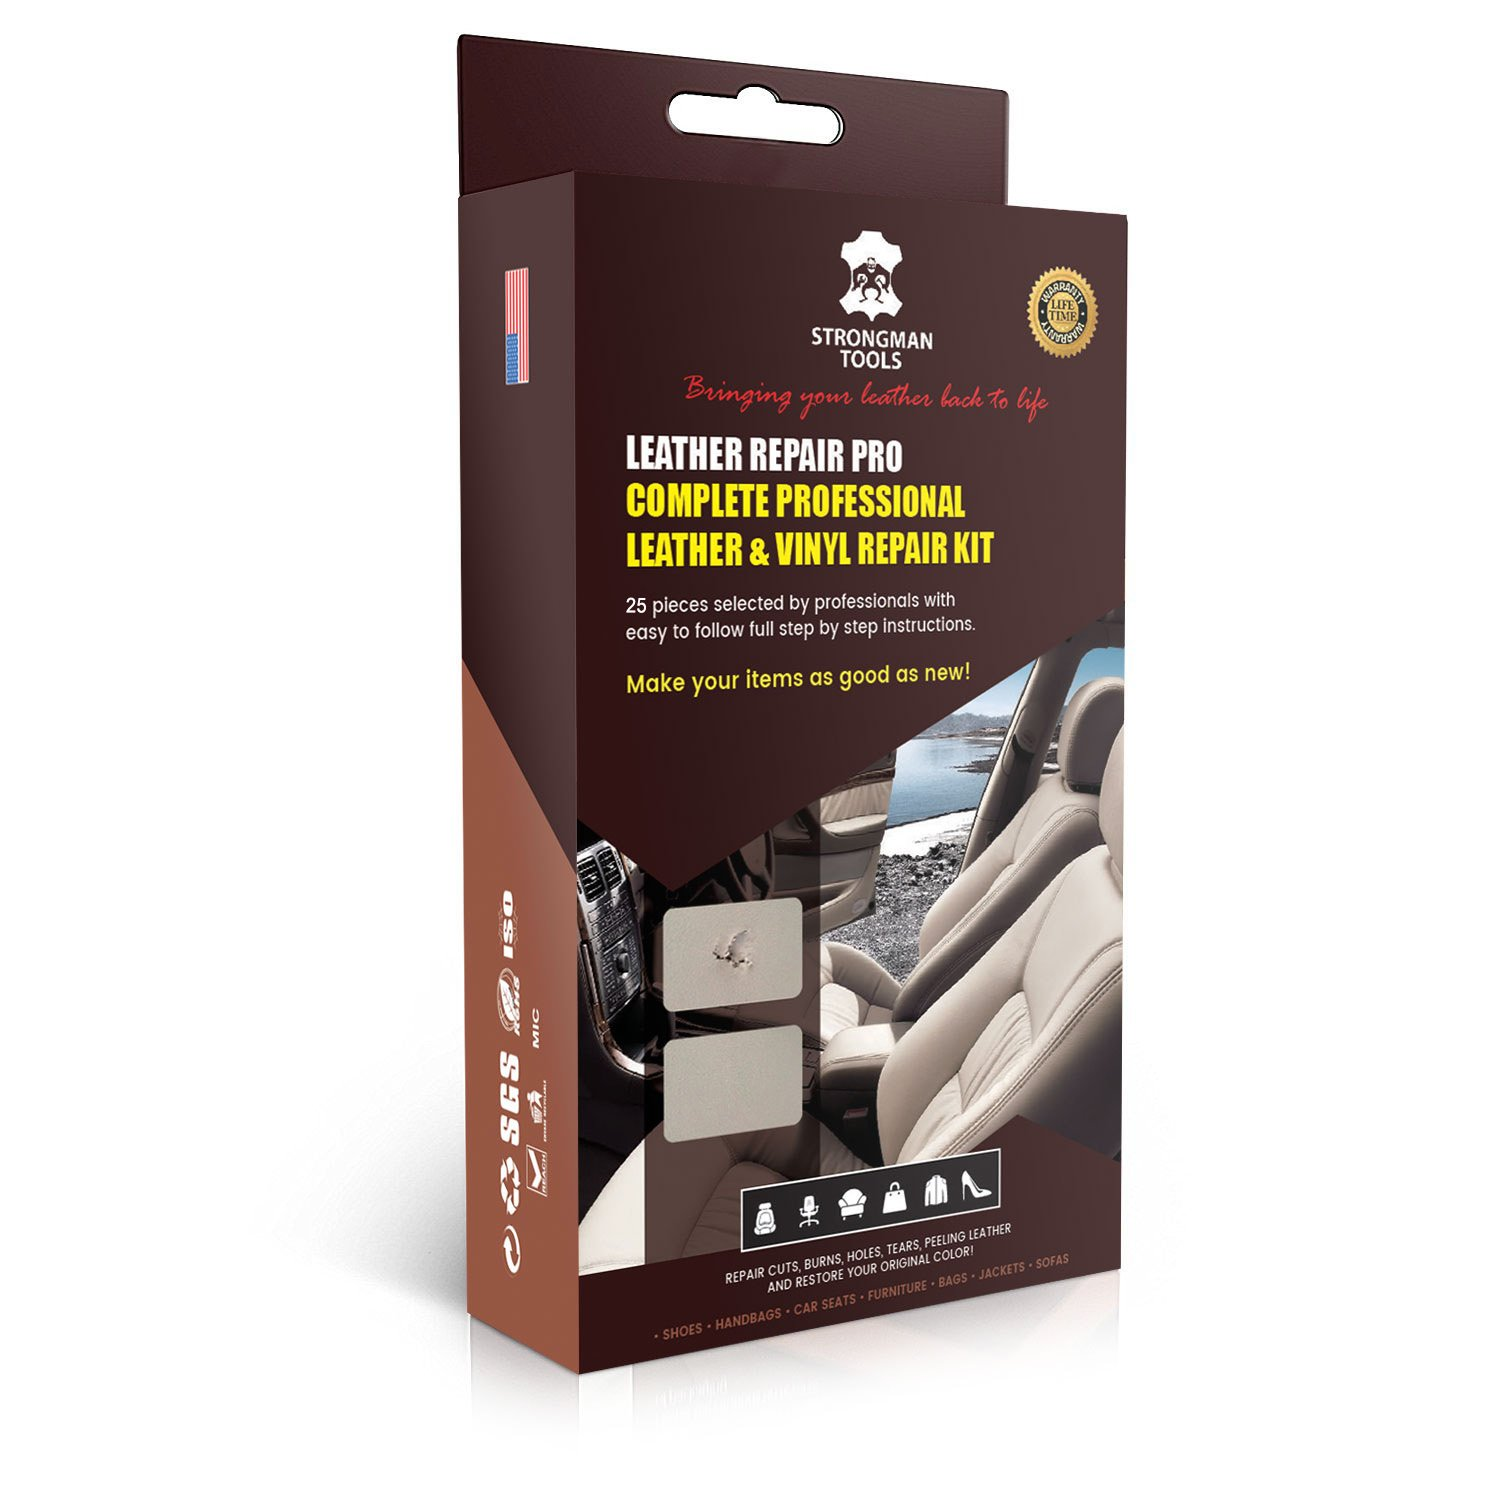 Top 10 Best Leather Repair Kit – (Guide and Reviews in 2019)